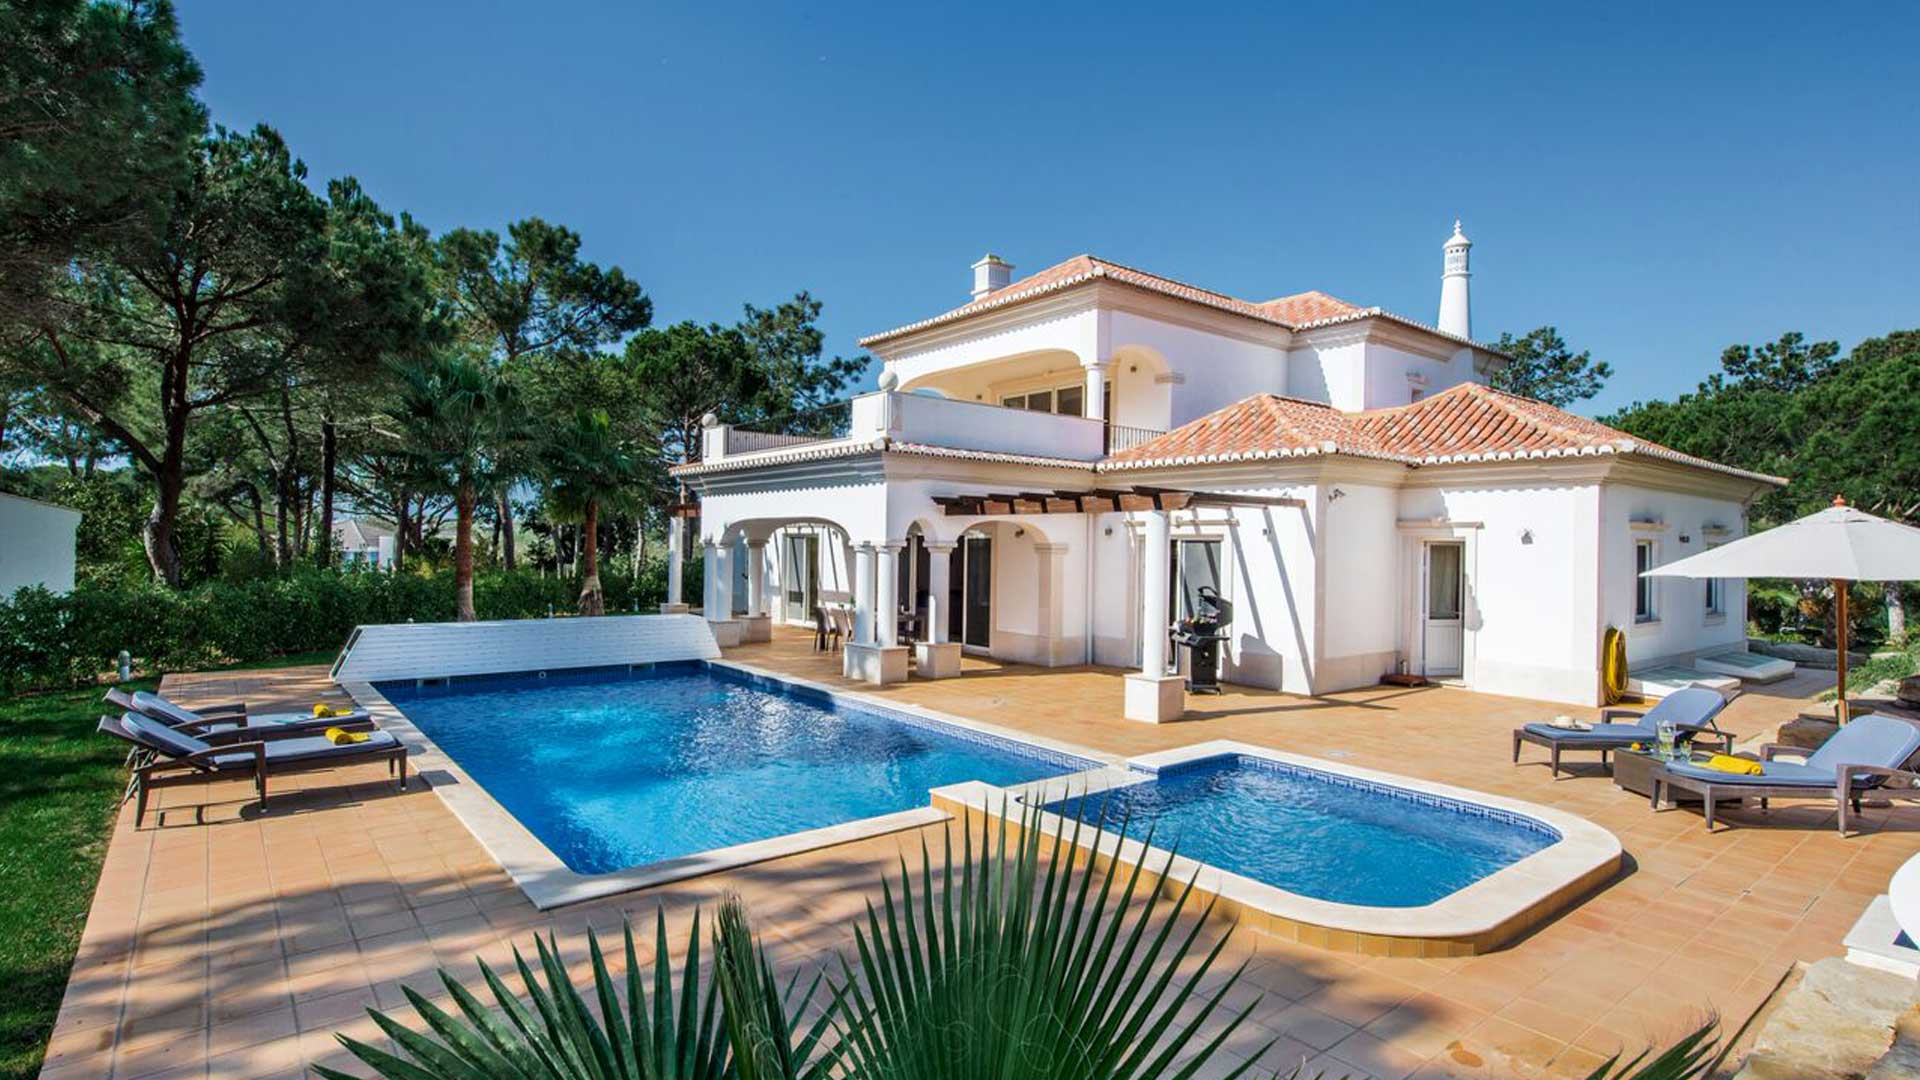 Villa Villa Thenia, Rental in Algarve